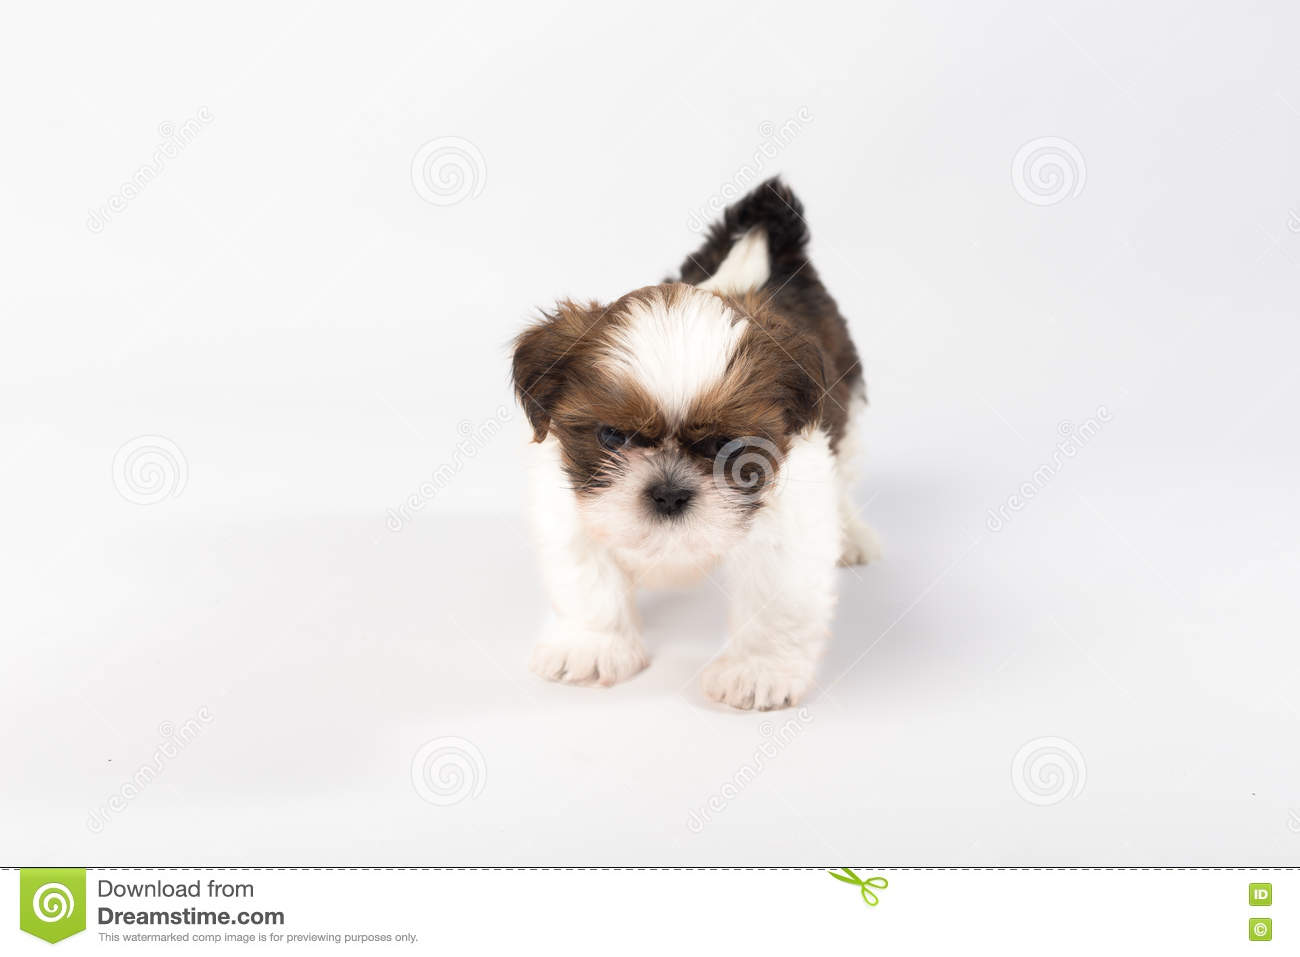 One Funny Shih Tzu Puppy Stock Photo Image Of Cute Puppy 74821436